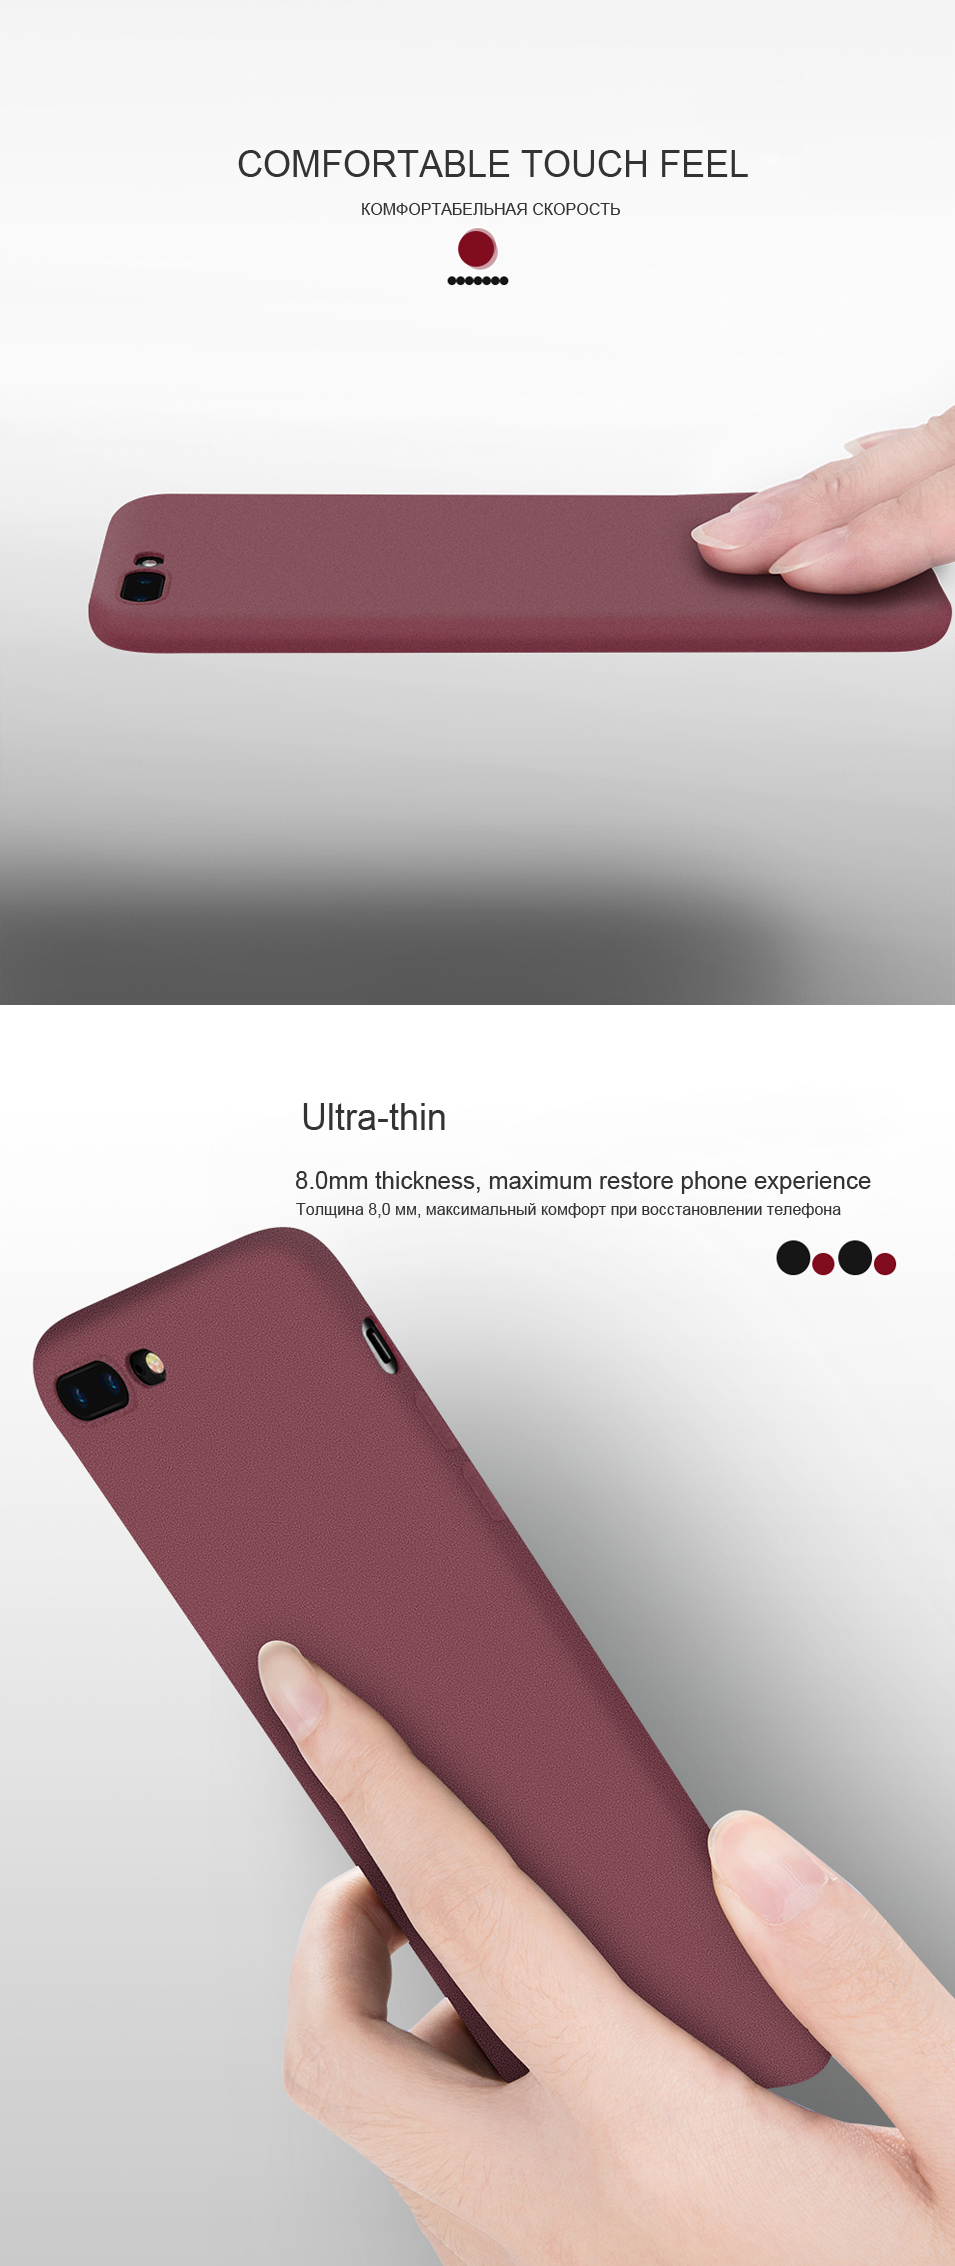 Soft Silicone Phone Case for Xiaomi Note 2 A1 Mix 2s 5X Max 2 Case Cover for Redmi Note 5A Prime 2S 5 Plus Case Matte Back Cover (12)